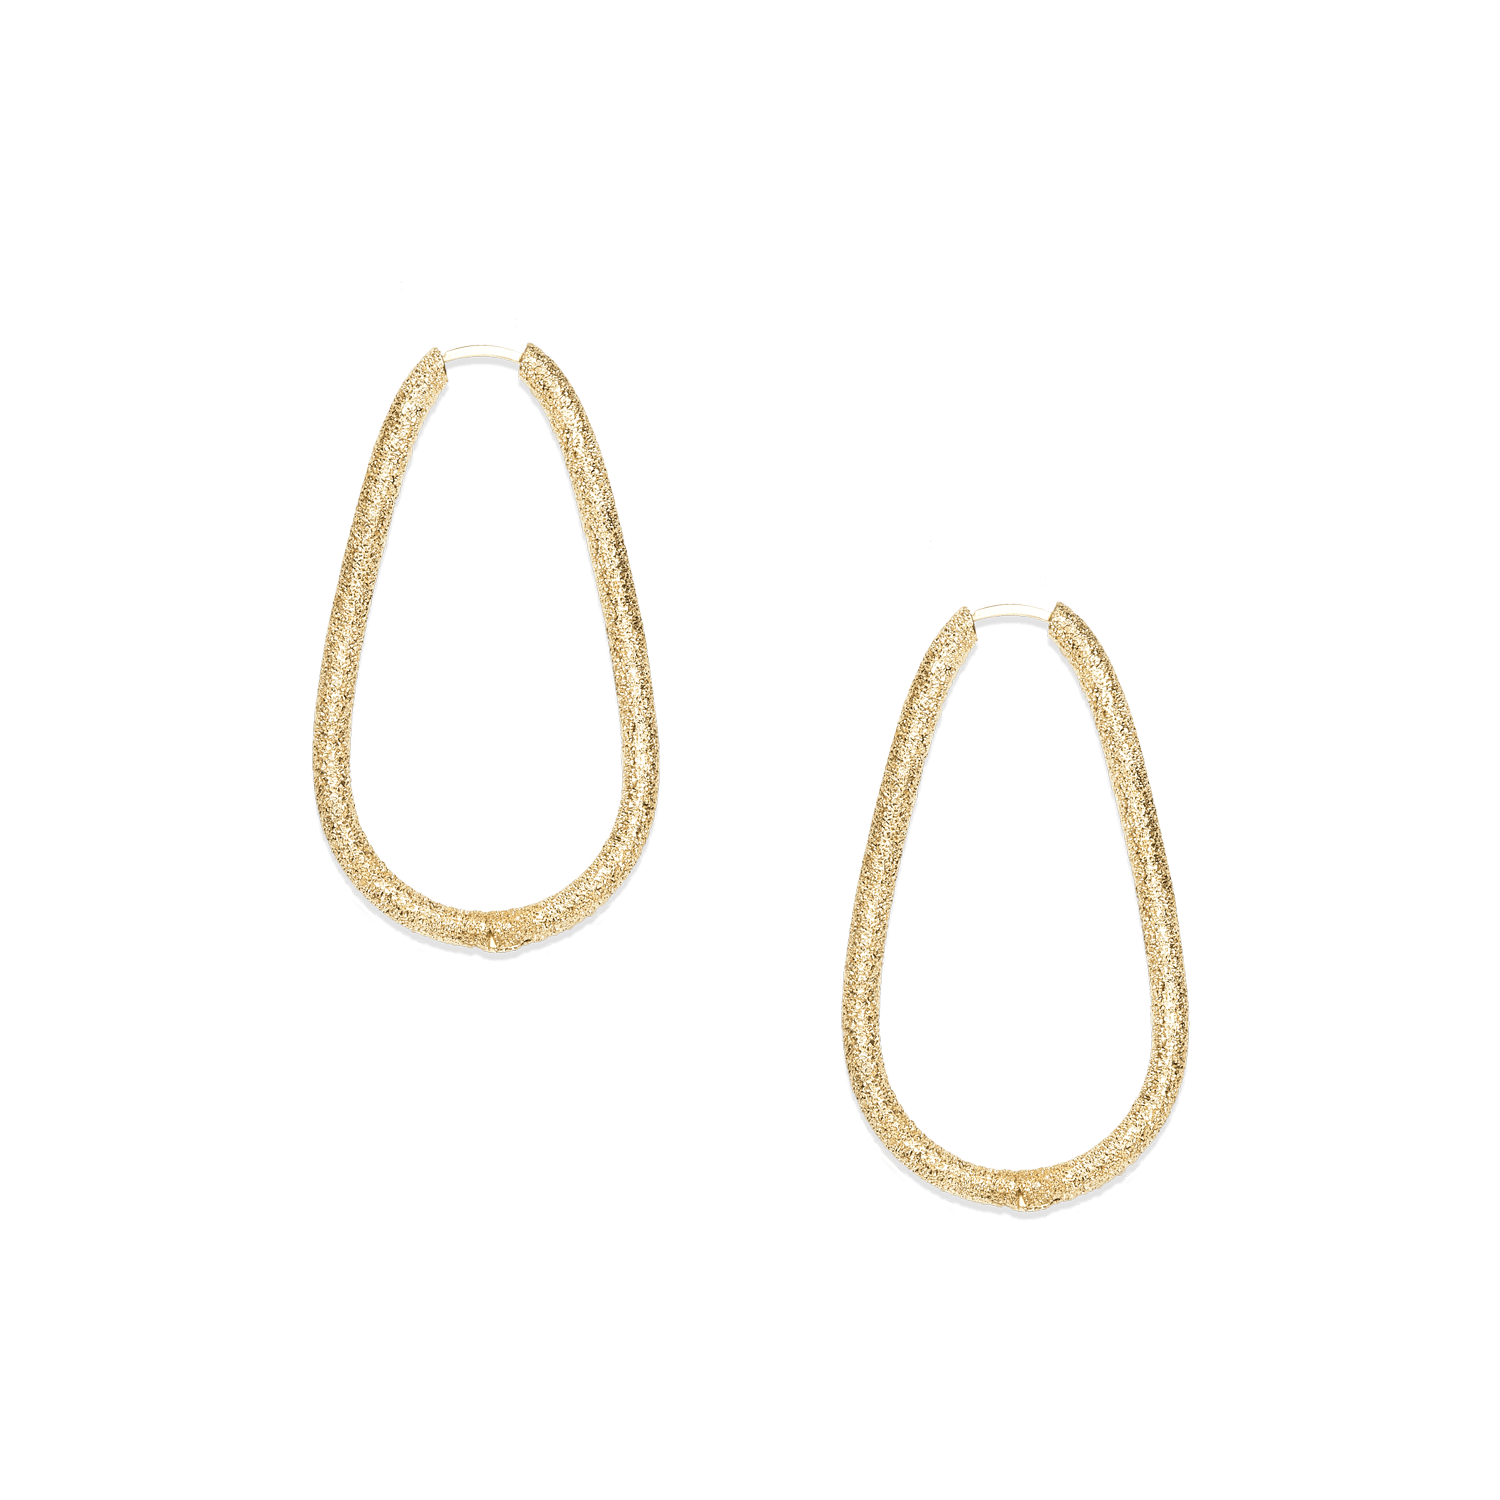 Large drop shaped hoop earrings in yellow gold